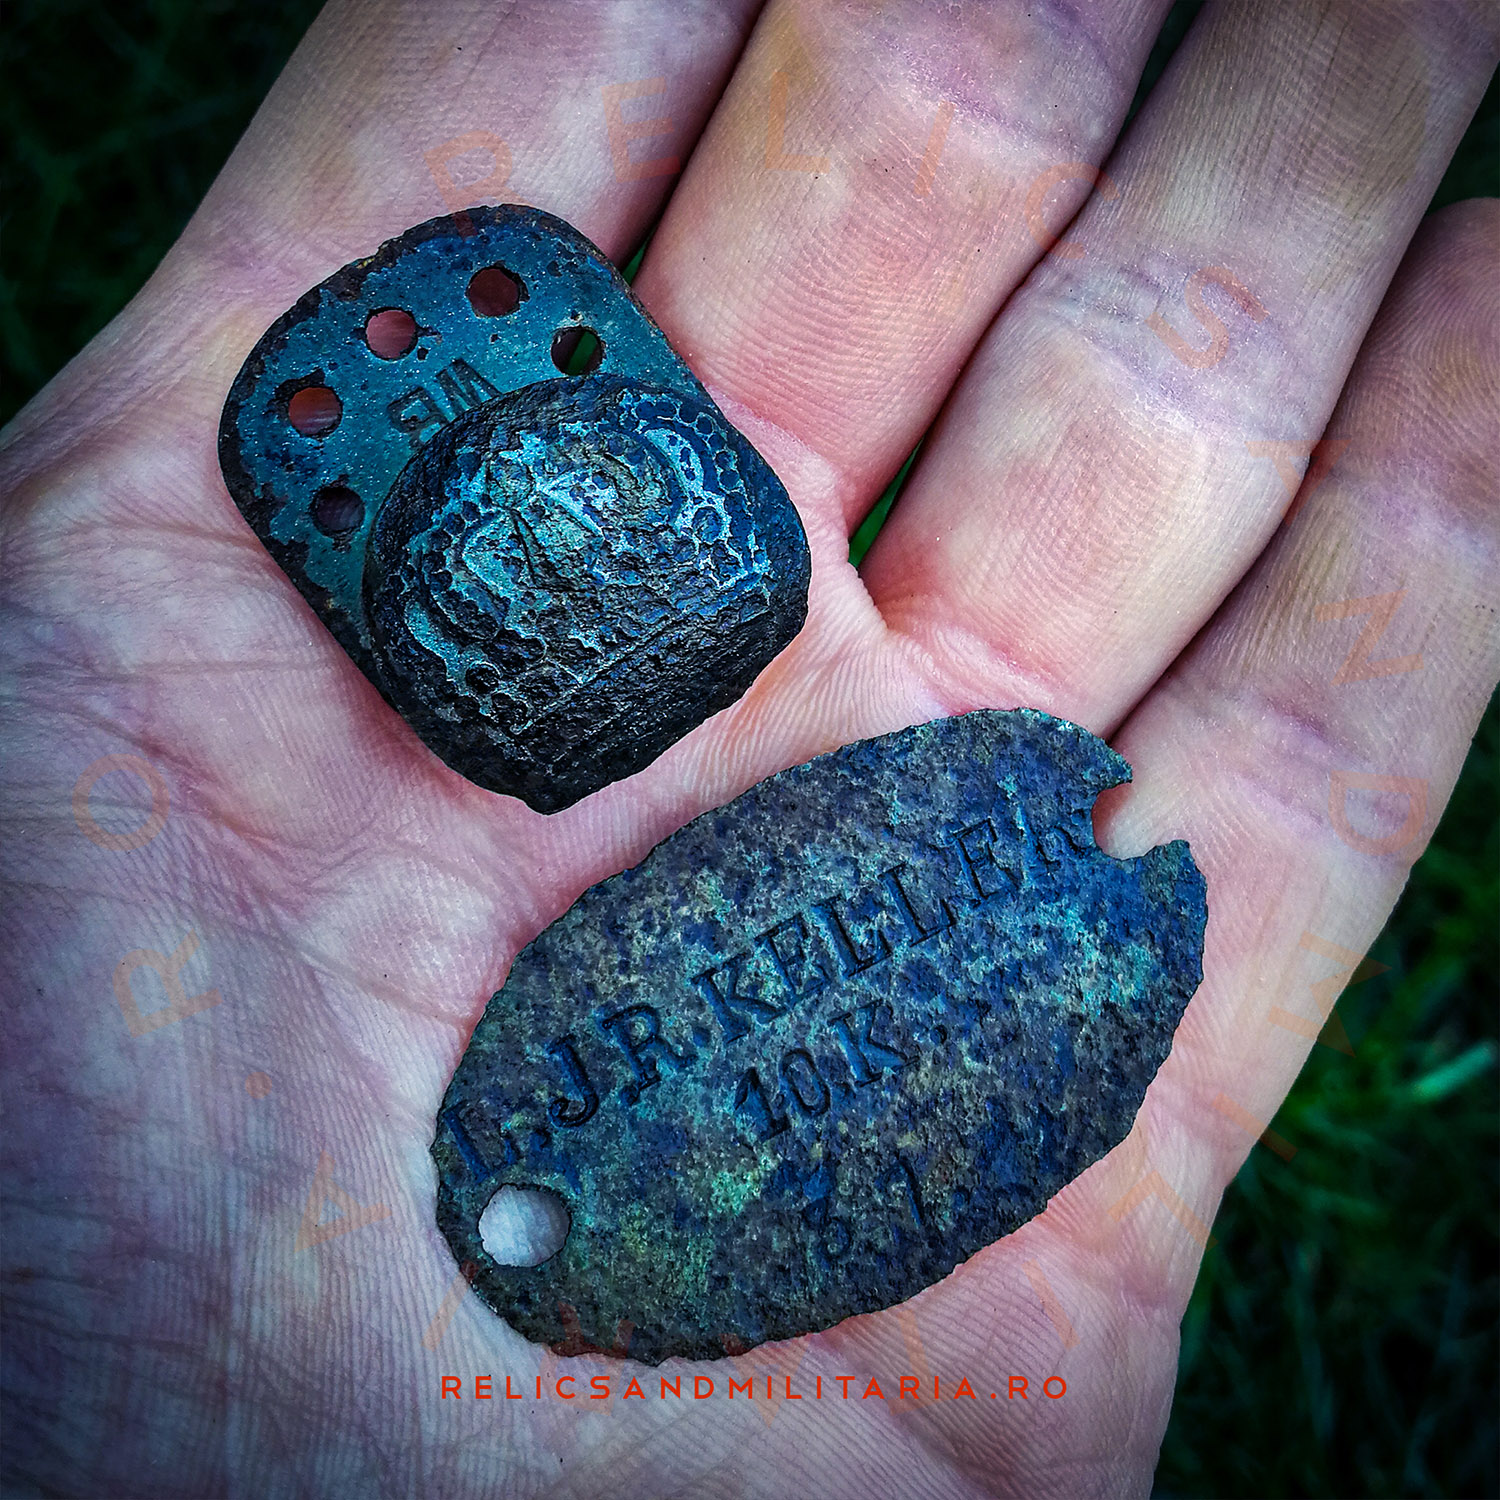 1878 type Erkennungsmarke WW1 German 89 Infantry Division Dog Tag Leichte Infantry Regiment Keller 10 companie